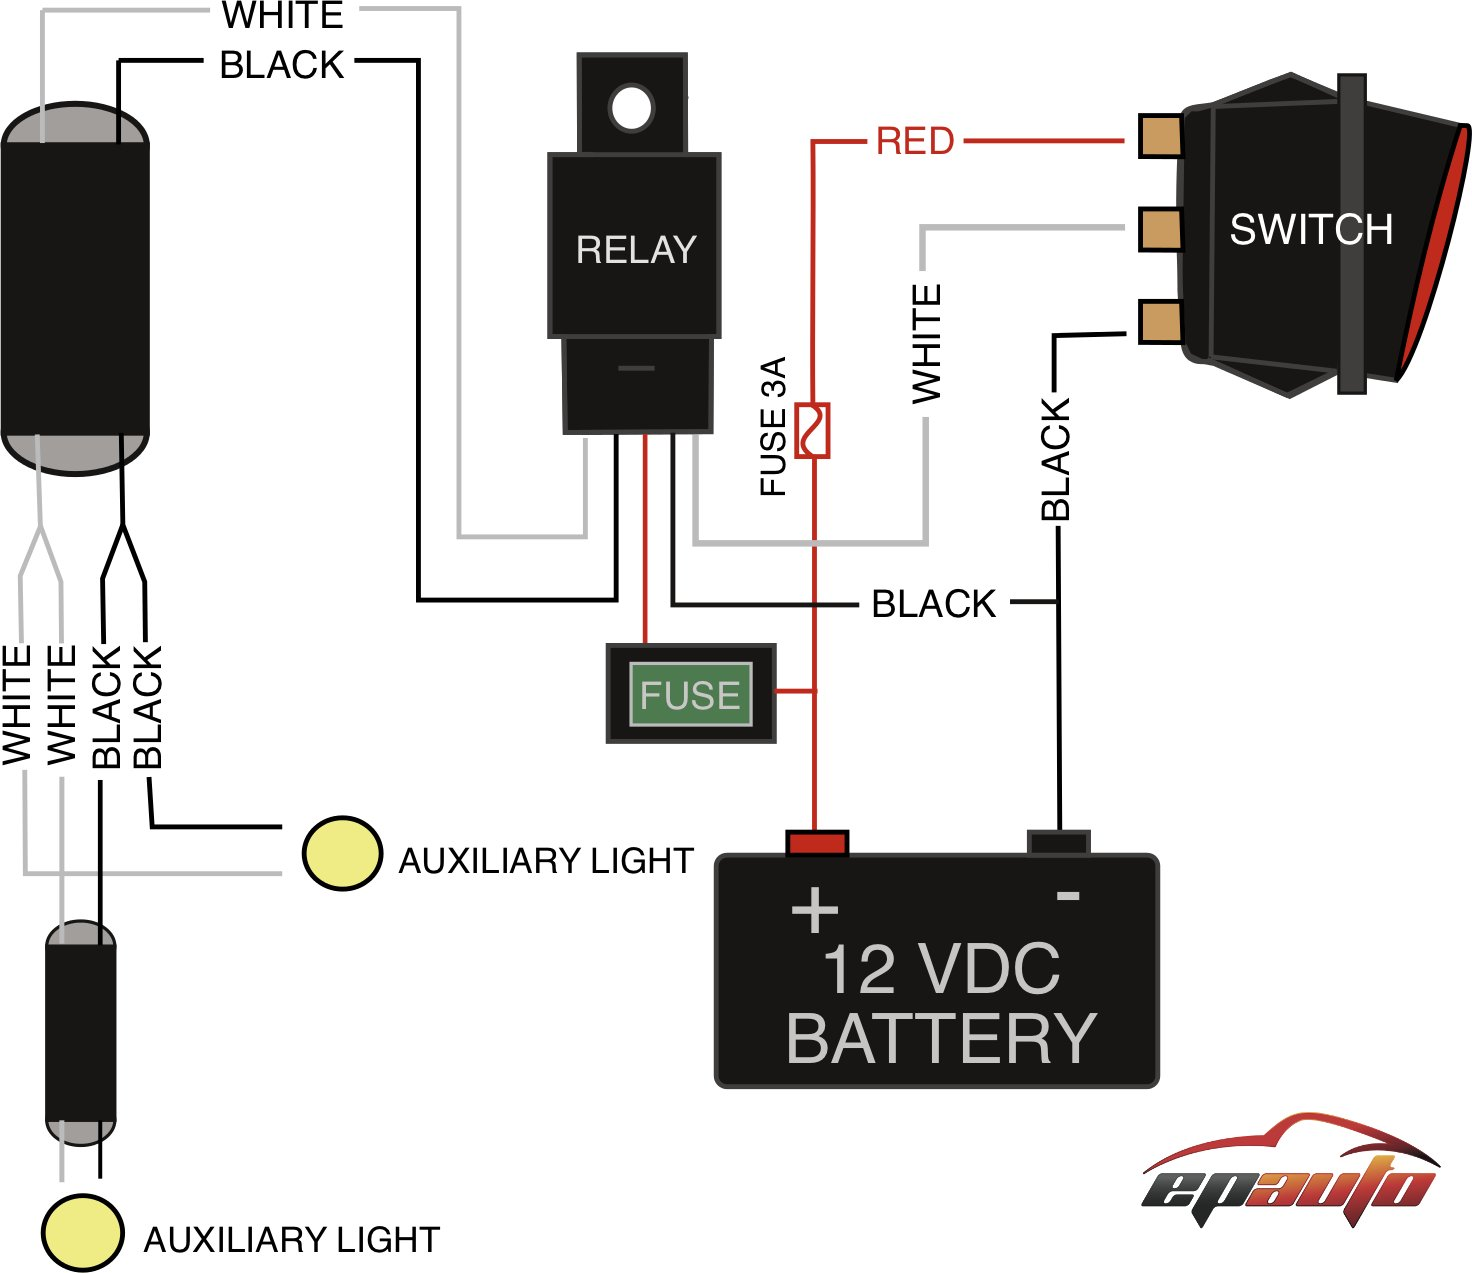 Off Road Light Switch Wiring - Wiring Diagram Sample Bar Off Road Lights Wiring Diagram on usb cable wire color diagram, particle accelerator diagram, 2007 nissan xterra dash diagram, 12v relay diagram, dark reaction diagram, web design diagram, off-road light cover, automotive ac system diagram, off-road motorcycle trail gps, road sign diagram, electrical system diagram, stellar evolution diagram, vehicle lighting diagram, accident collision diagram, dark matter diagram, added value chain diagram, fireplace parts diagram, home network setup diagram, turn driving diagram, ford ignition switch diagram,